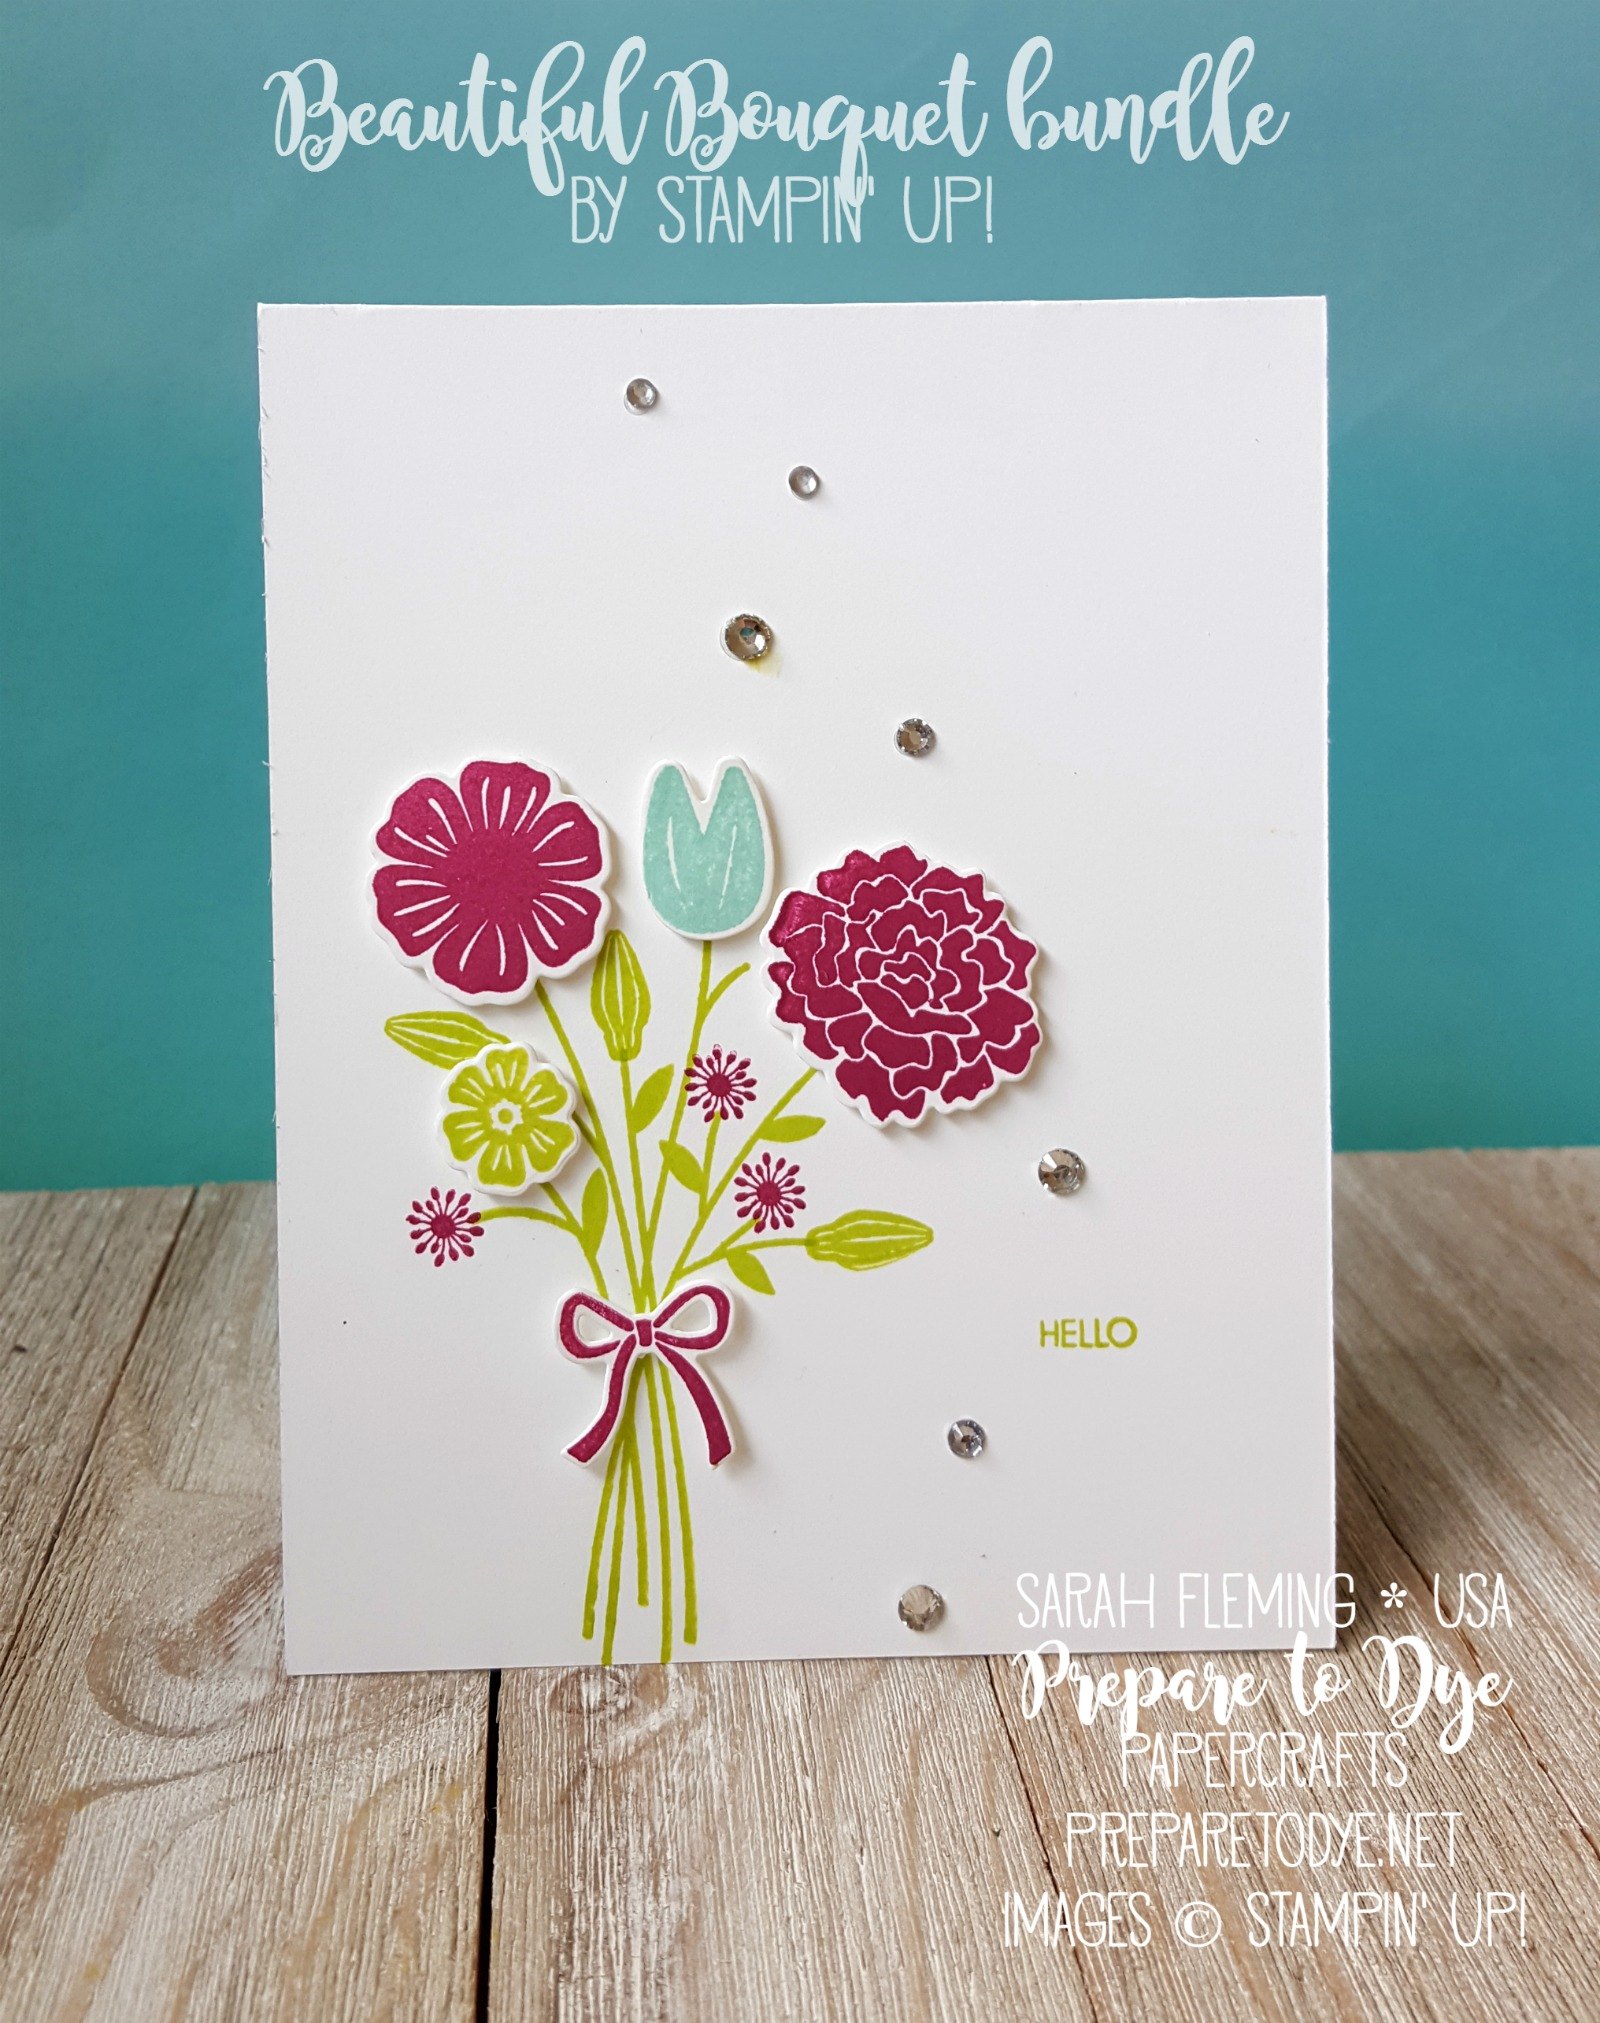 Stampin' Up! Beautiful Bouquet bundle with Bouquet Bunch framelits - Creativity Your Way Facebook Live session - Sarah Fleming - Prepare to Dye Papercrafts - #GDP093